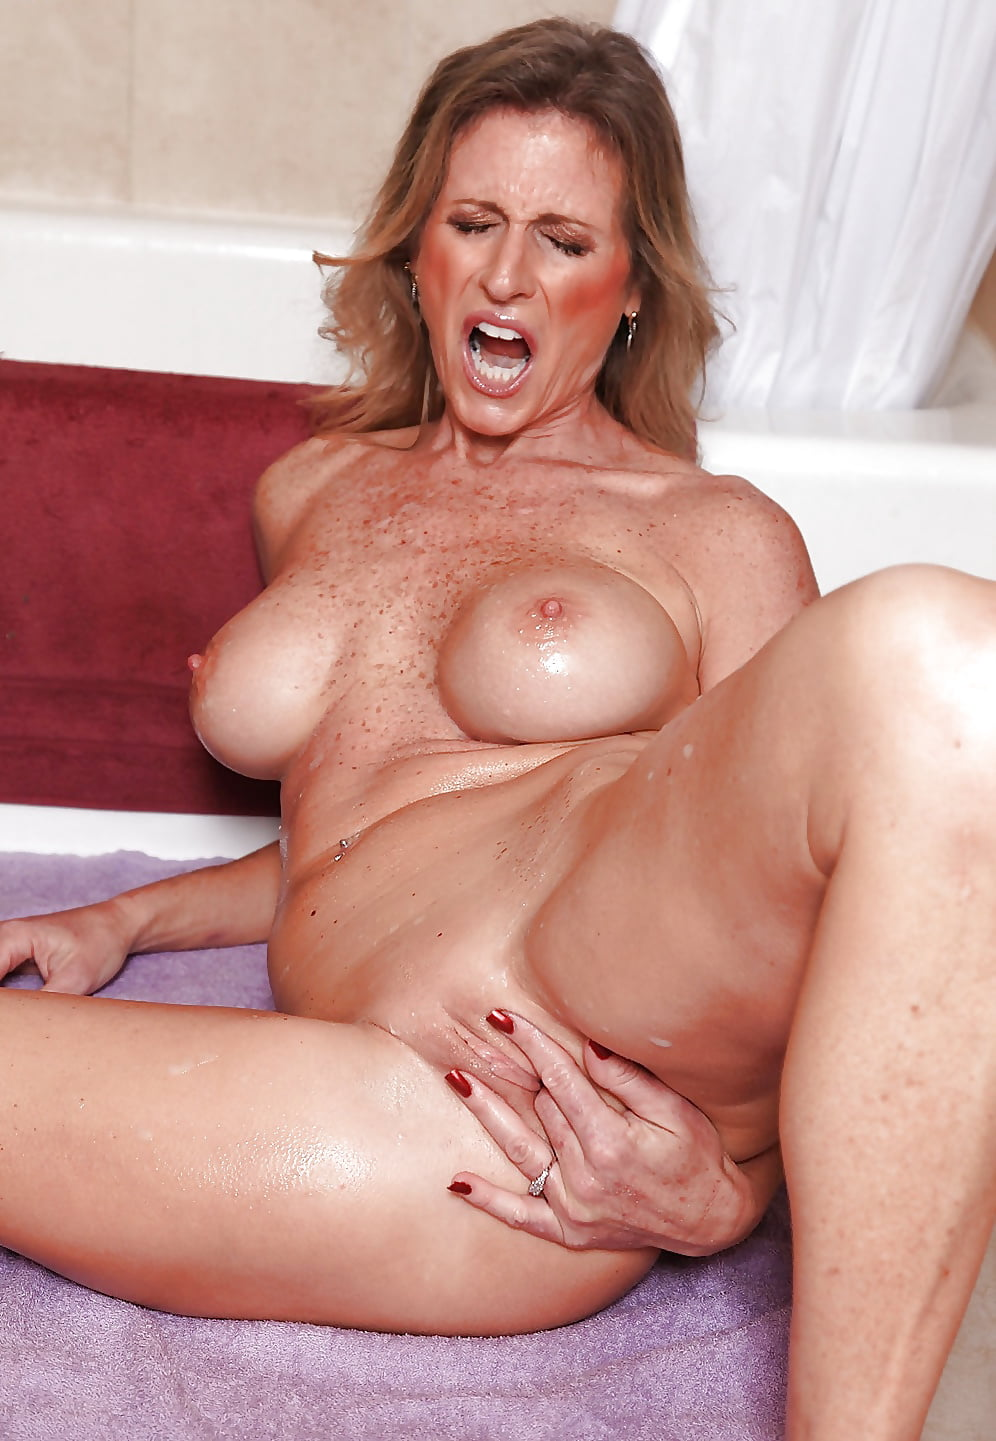 Milf Finger And Blowjob